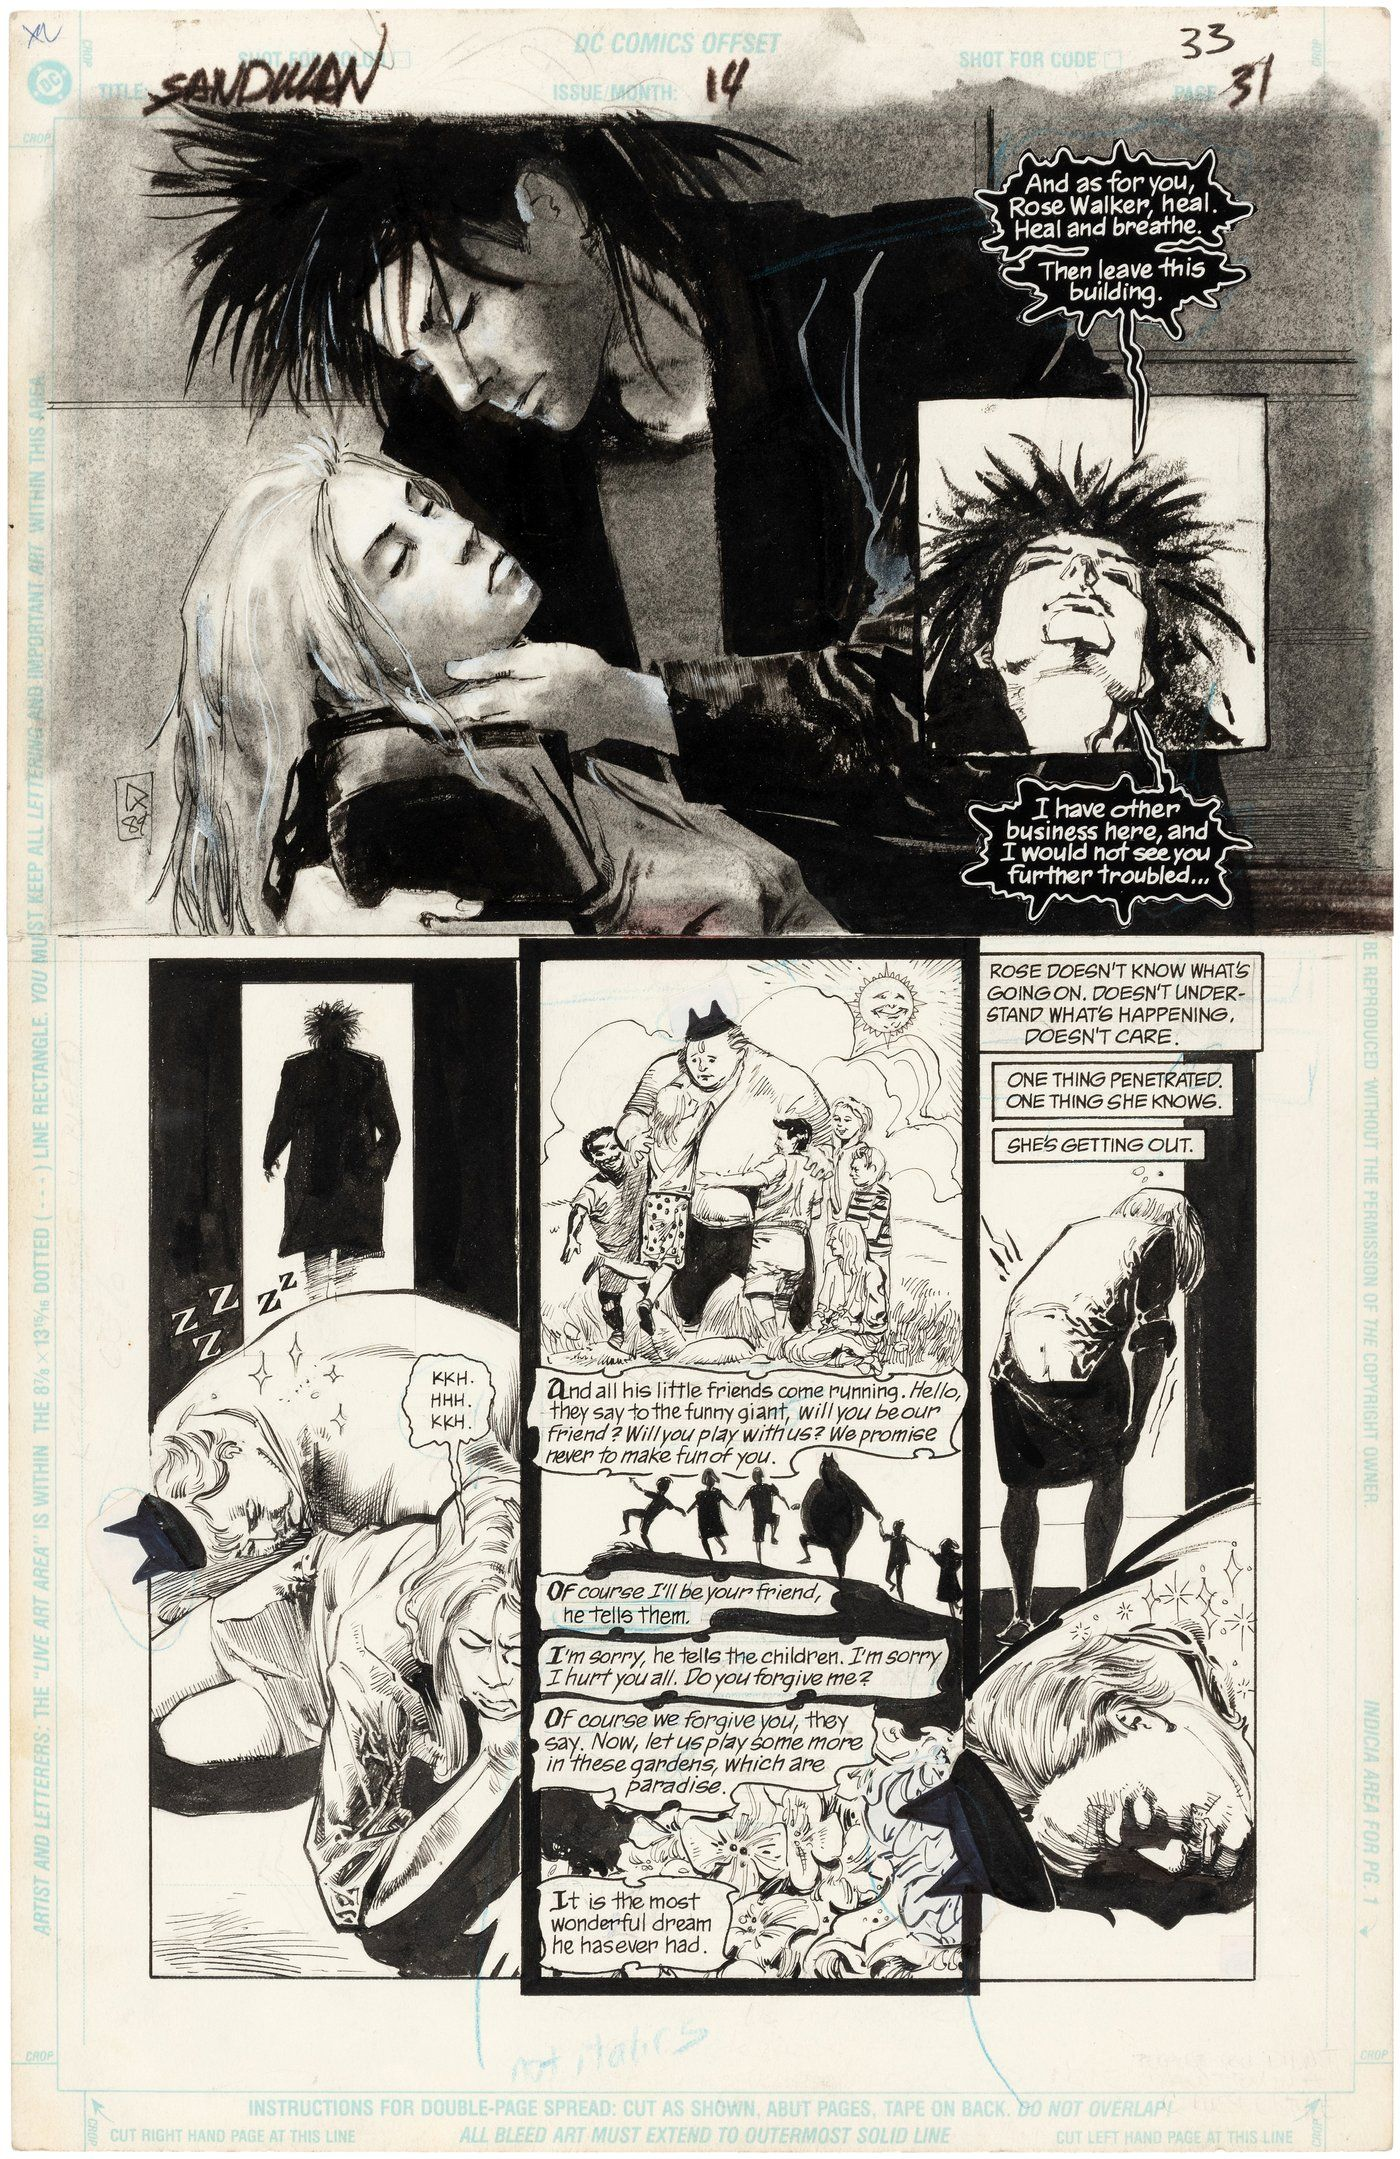 Hake S Sandman 14 Comic Book Page Original Art By Mike Dringenberg Sandman Sandman Comic Art